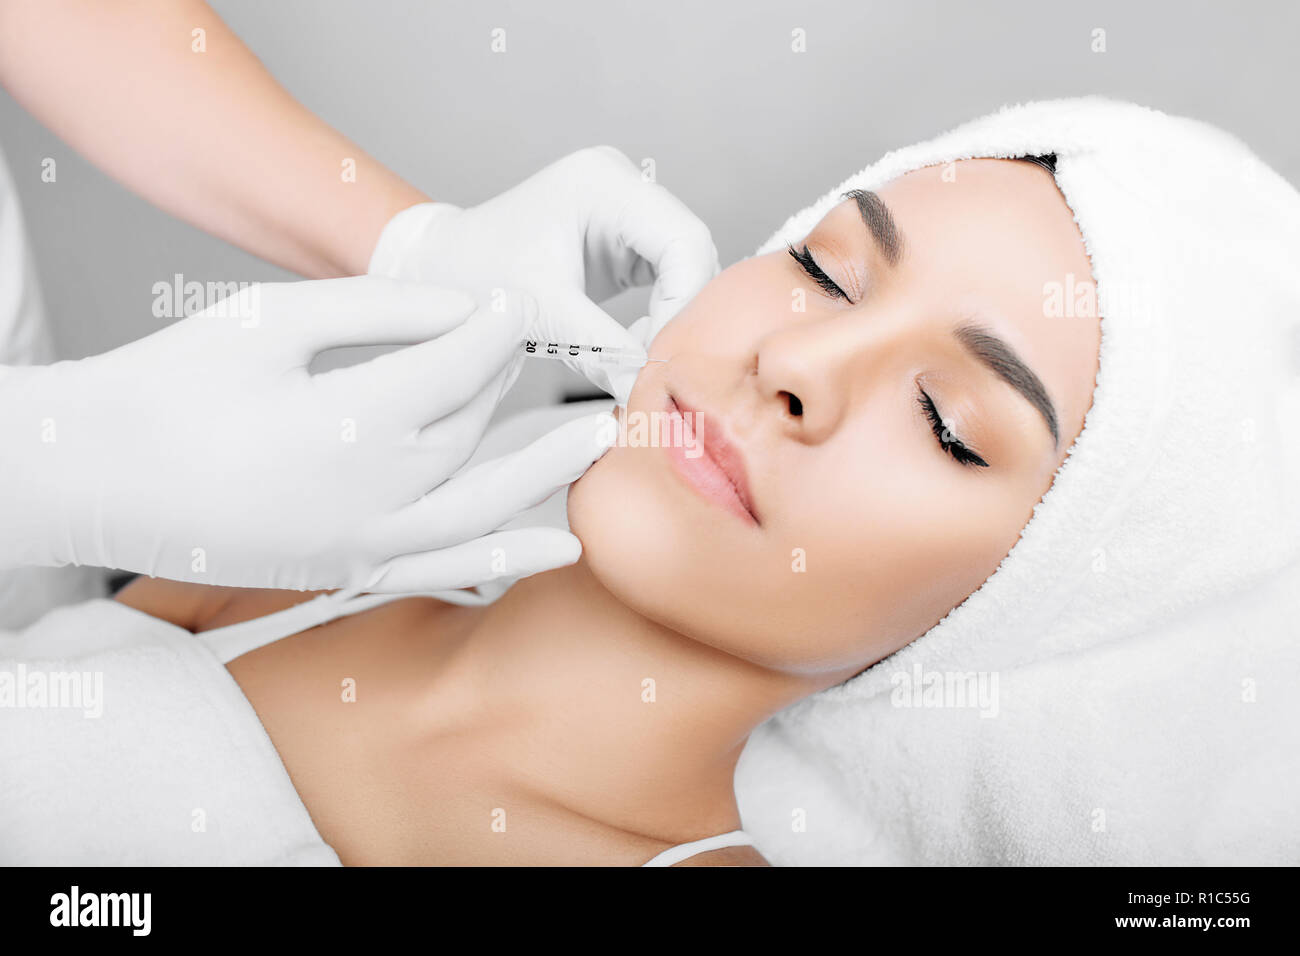 Beautiful woman having facial injection into area near mouth and nose. Anti age collagen injections into face. Beautician making injections for faceli - Stock Image